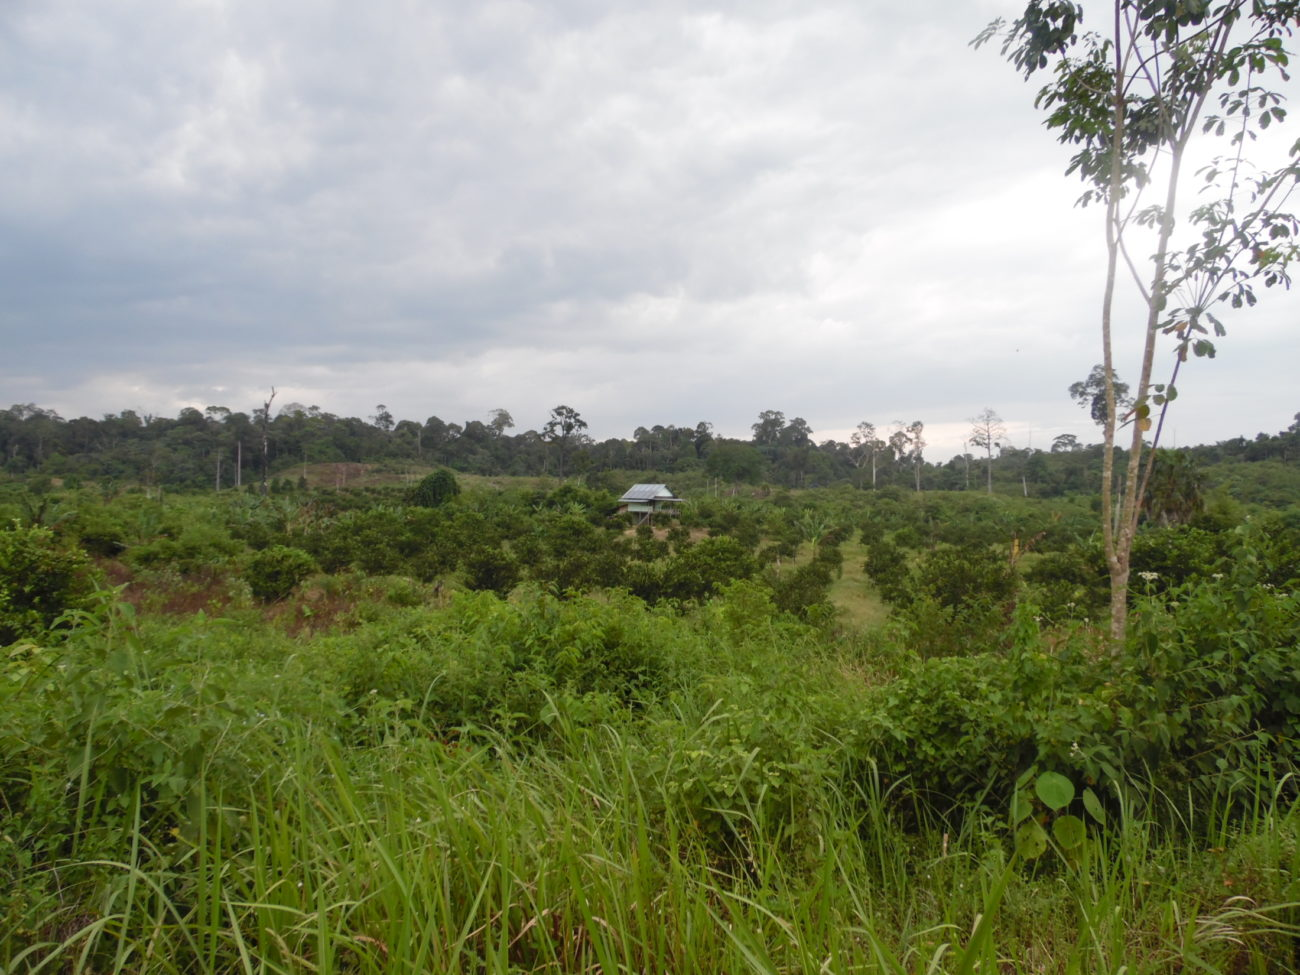 An area of young trees at a forest restoration site in Sumatra.